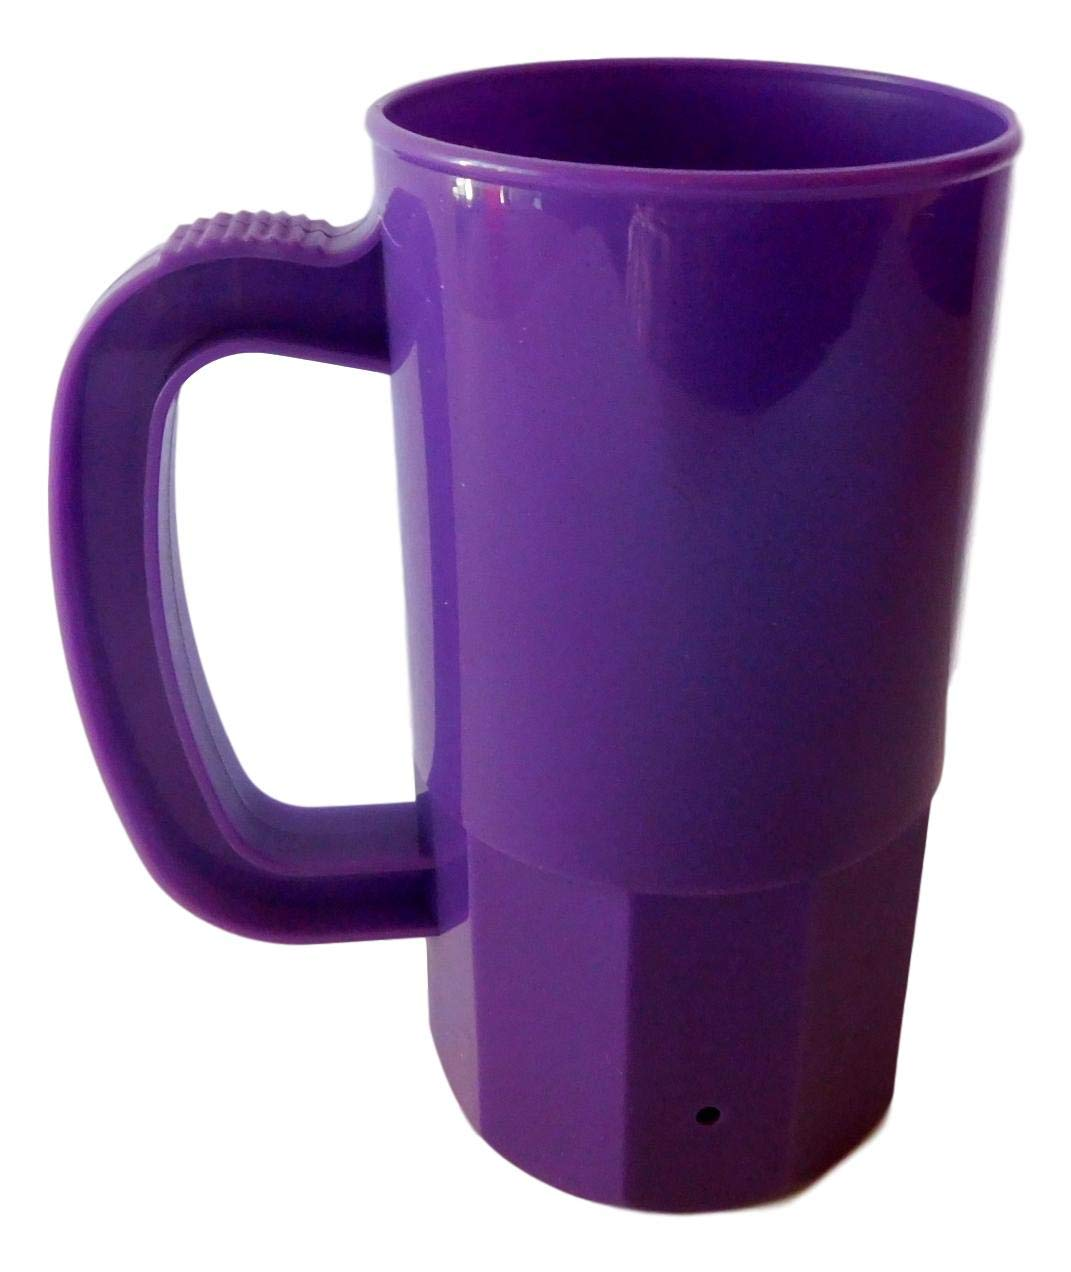 10 Small Mix of Colors Cups-Mugs, 2 ea Purple, Pink, Green, Yellow Orange. Holds 14 Ounces